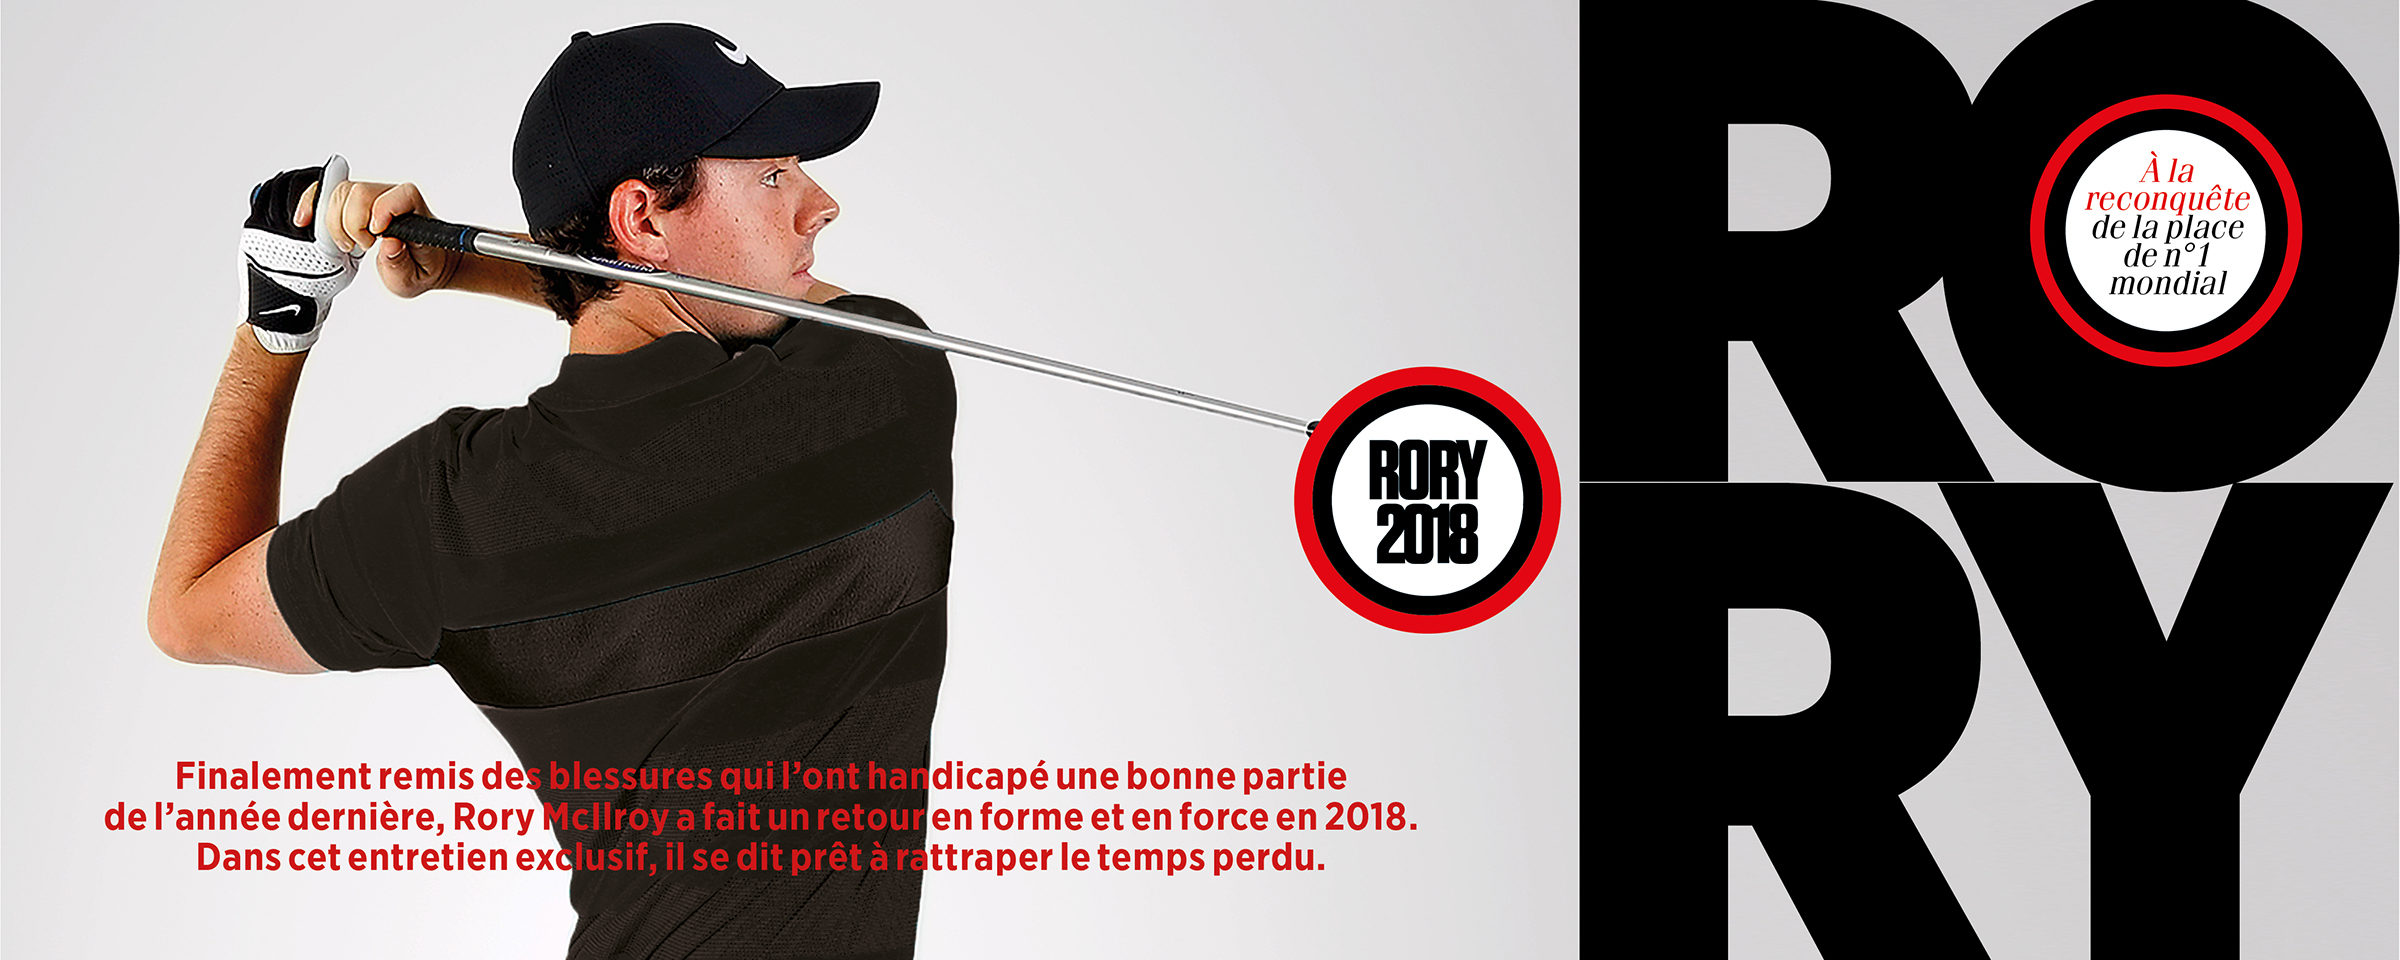 Rory exclusif